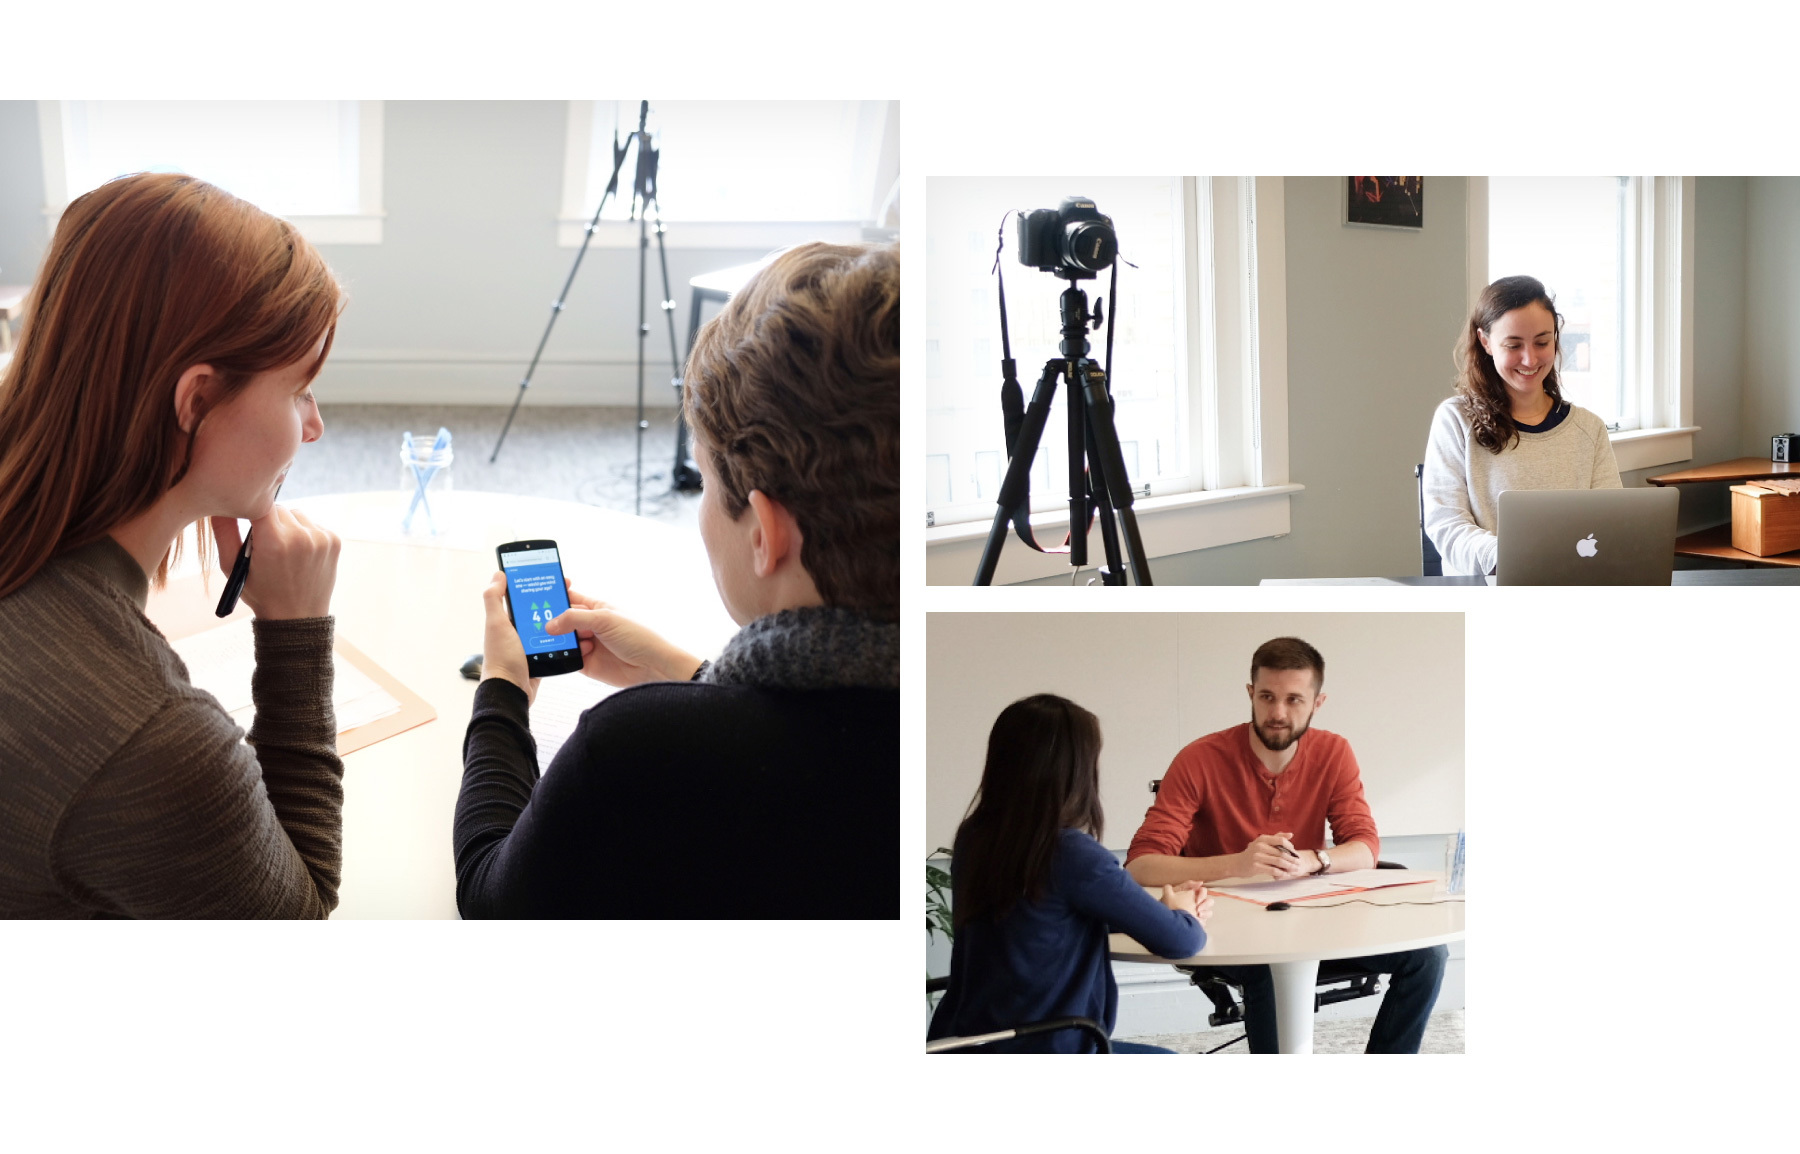 Photos of Viget UX researchers interviewing participants.